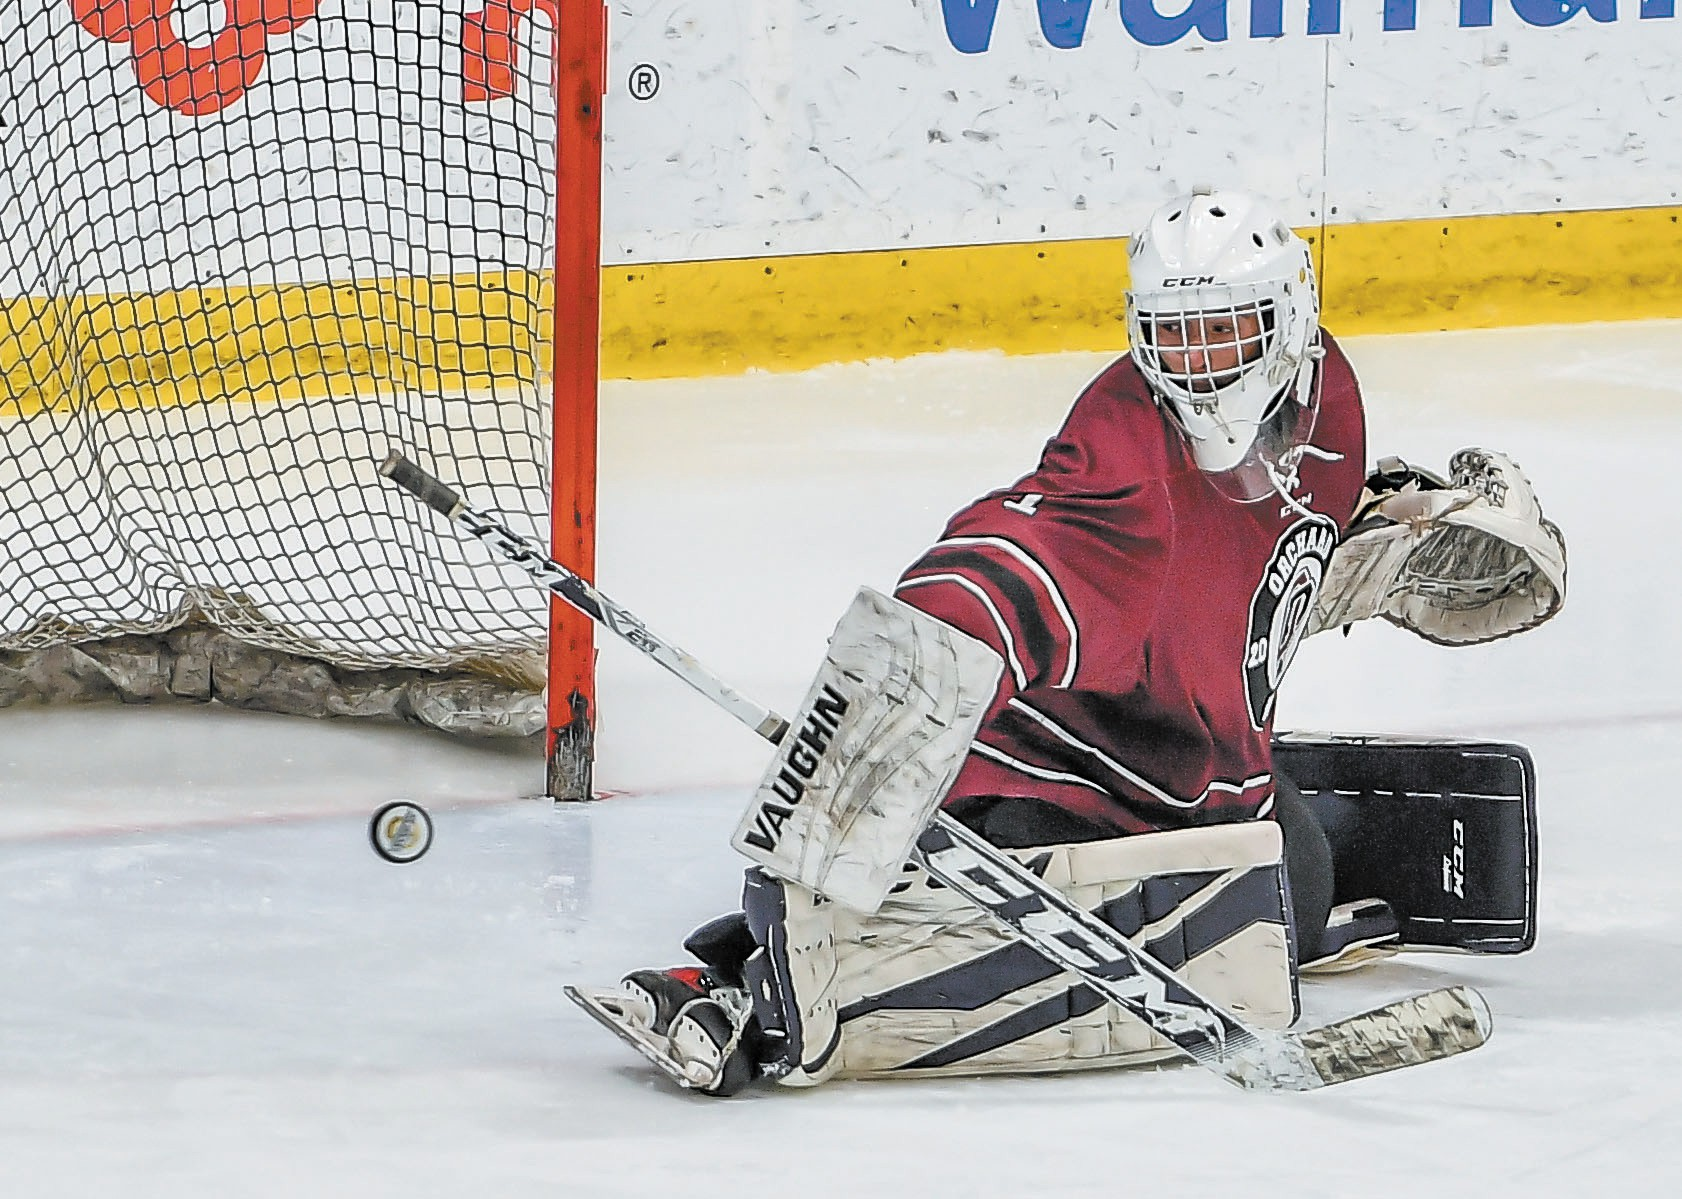 Boys Hockey Team Earns Title Of Team Of The Year Orchard Park Bee